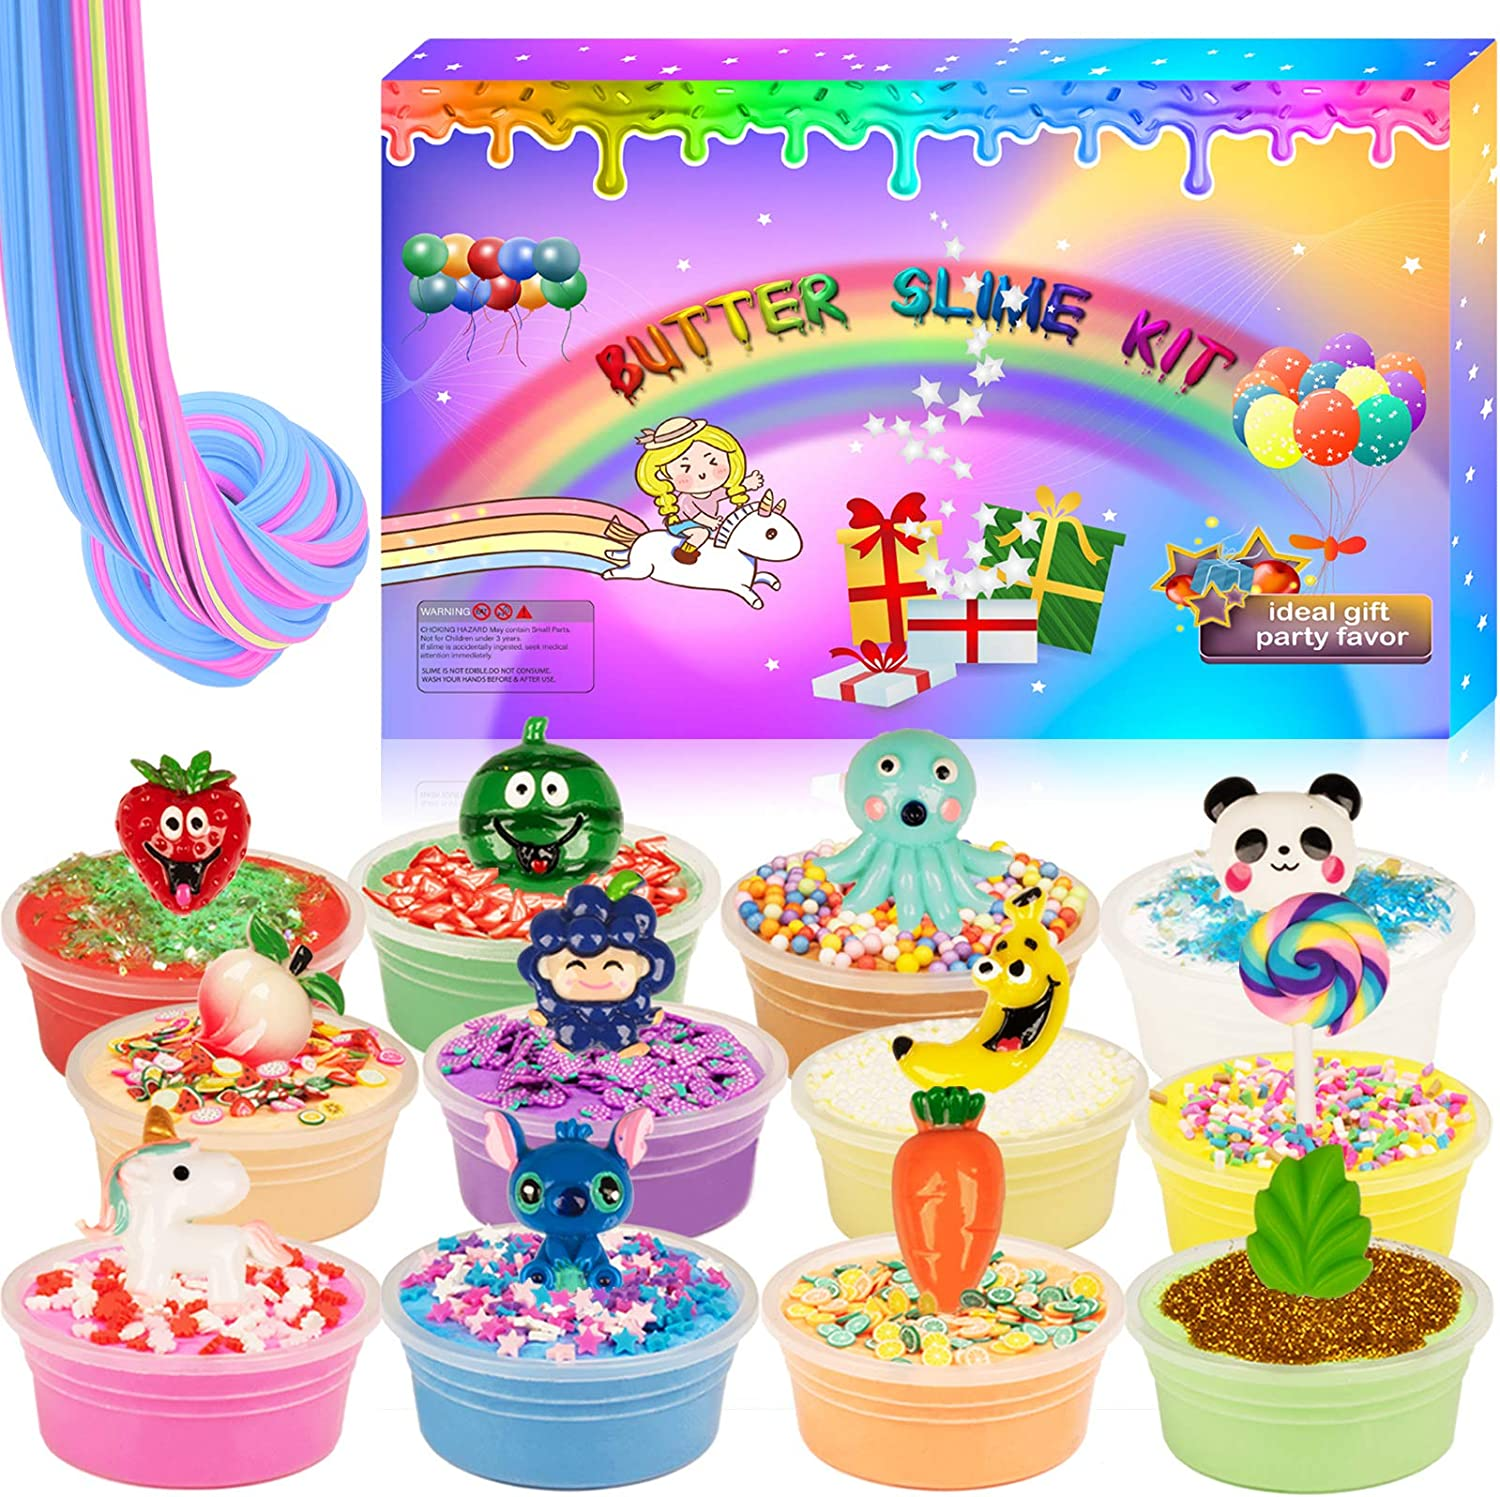 Hahafunyo Butter Slime Kit DIY 12 Pack for Girl Boy, Stretchy Bubble Slime Non Sticky Fun Slime for Kids, Cute Charms Animal Food Plant, Sprinkles, Glitters, Fruit Slices, All in One Slime Party Favor